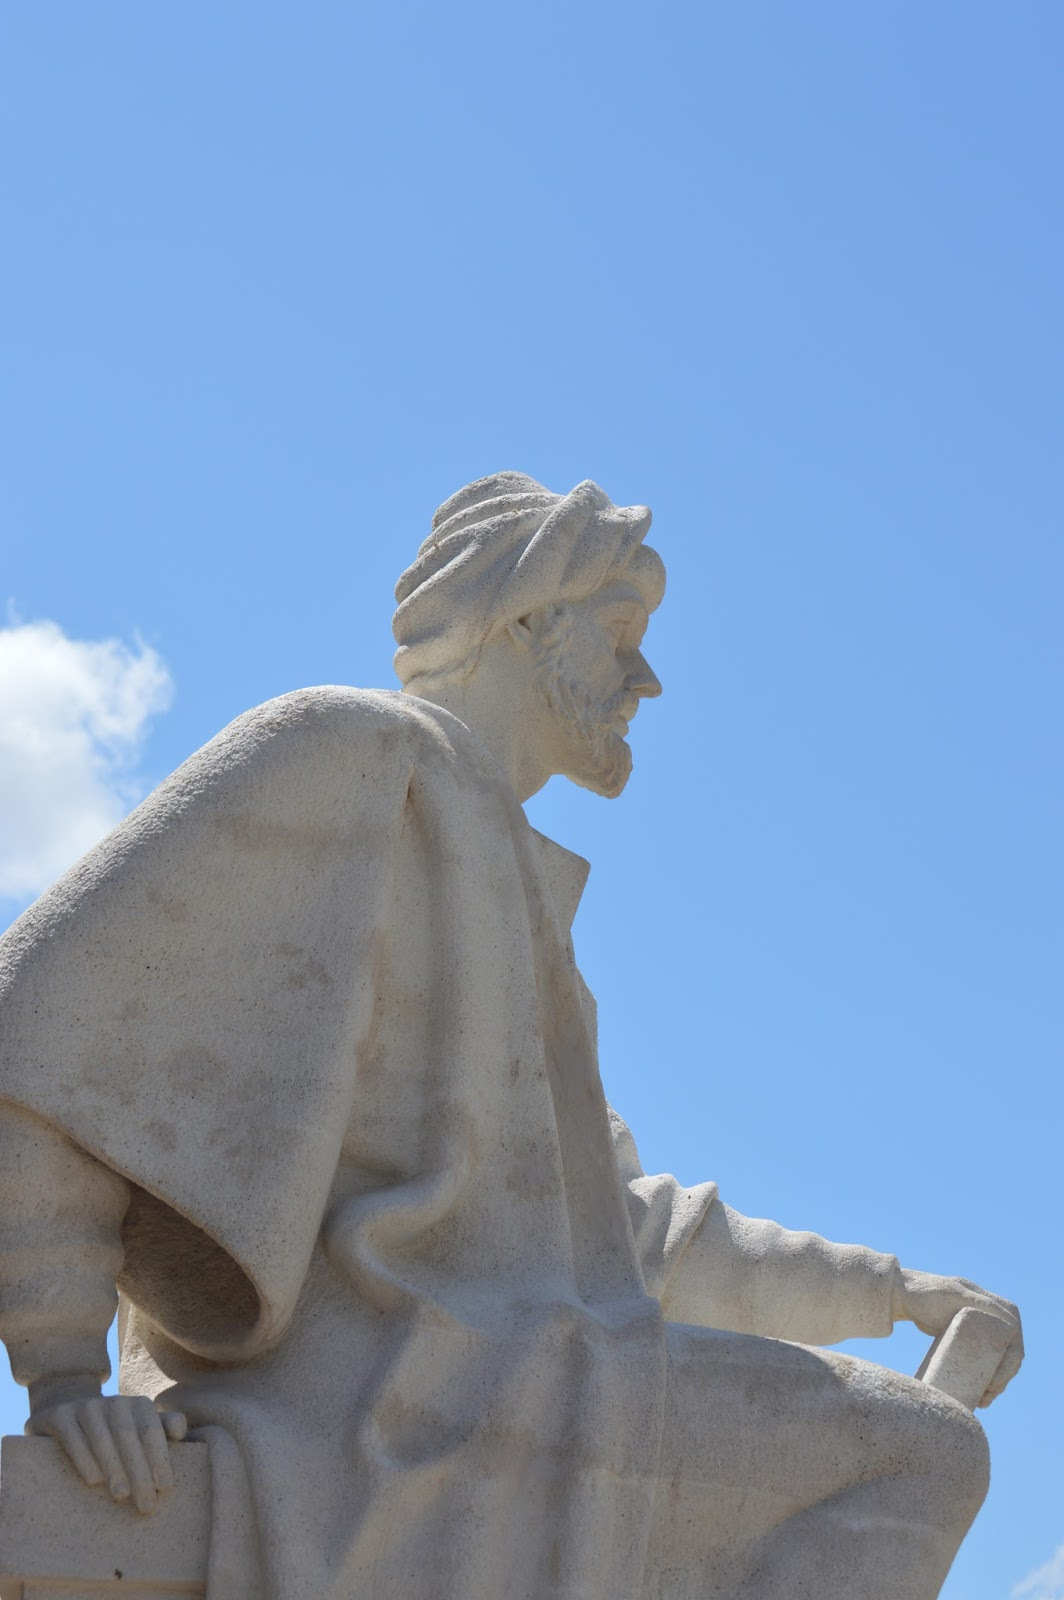 ibn rushid Averroes (ibn rushd) (1126 - december 10, 1198) was an andalusian-arab philosopher and physician, a master of philosophy and islamic law, mathematics, and medicine.